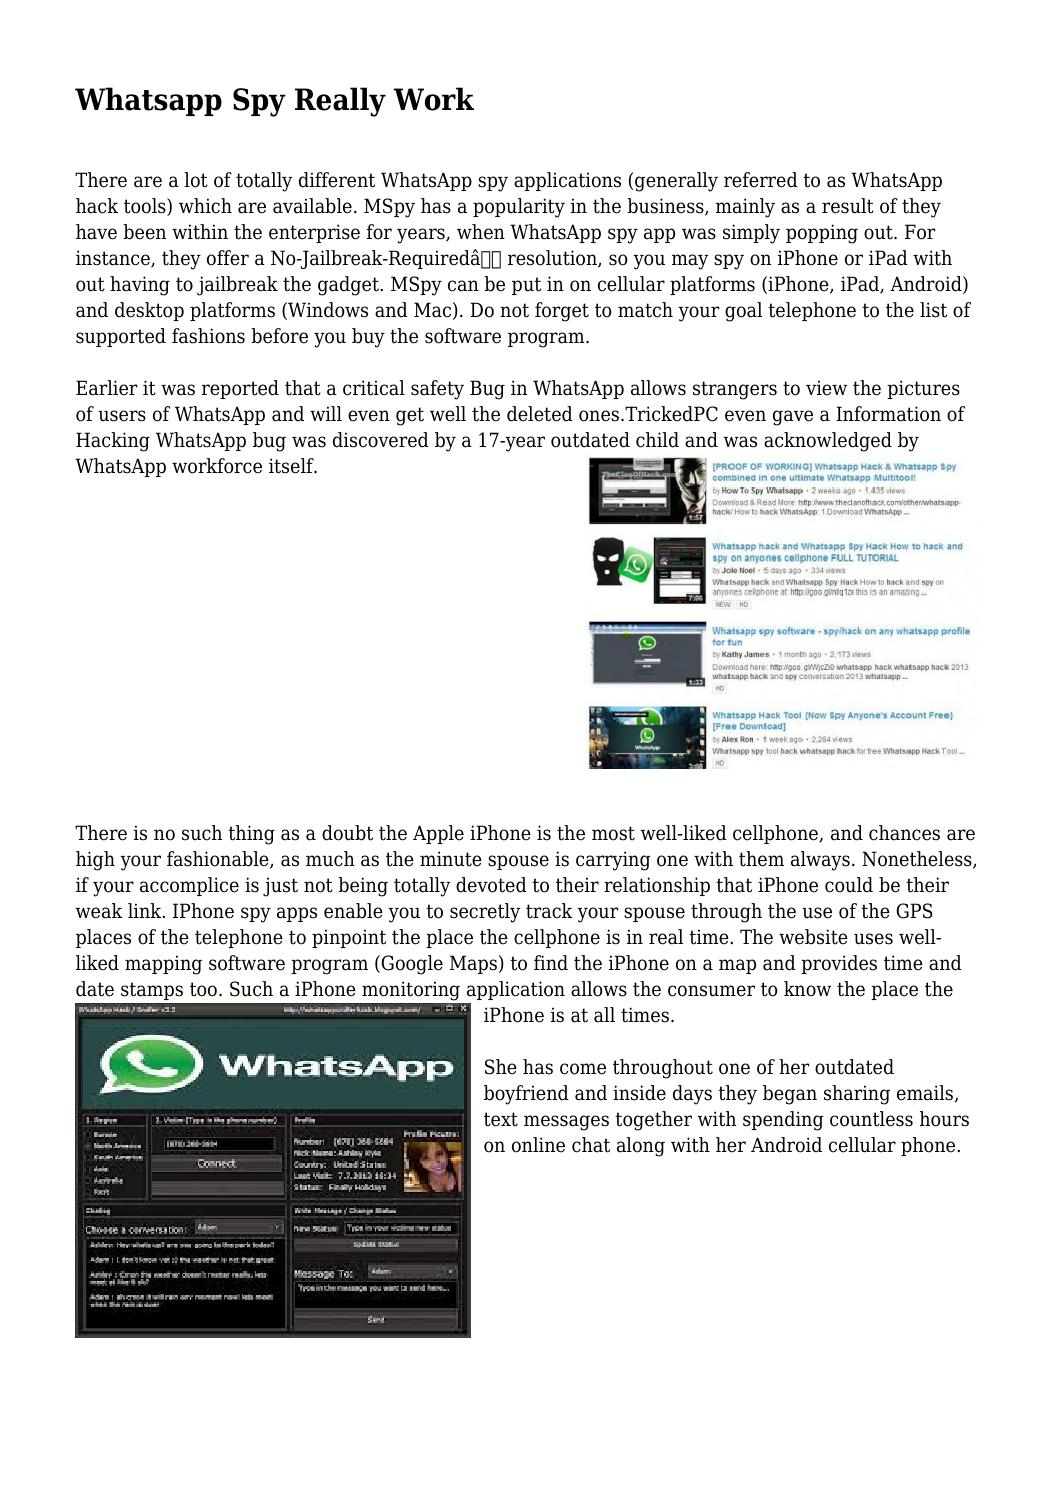 Part 2. How to Spy on WhatsApp Messages Online